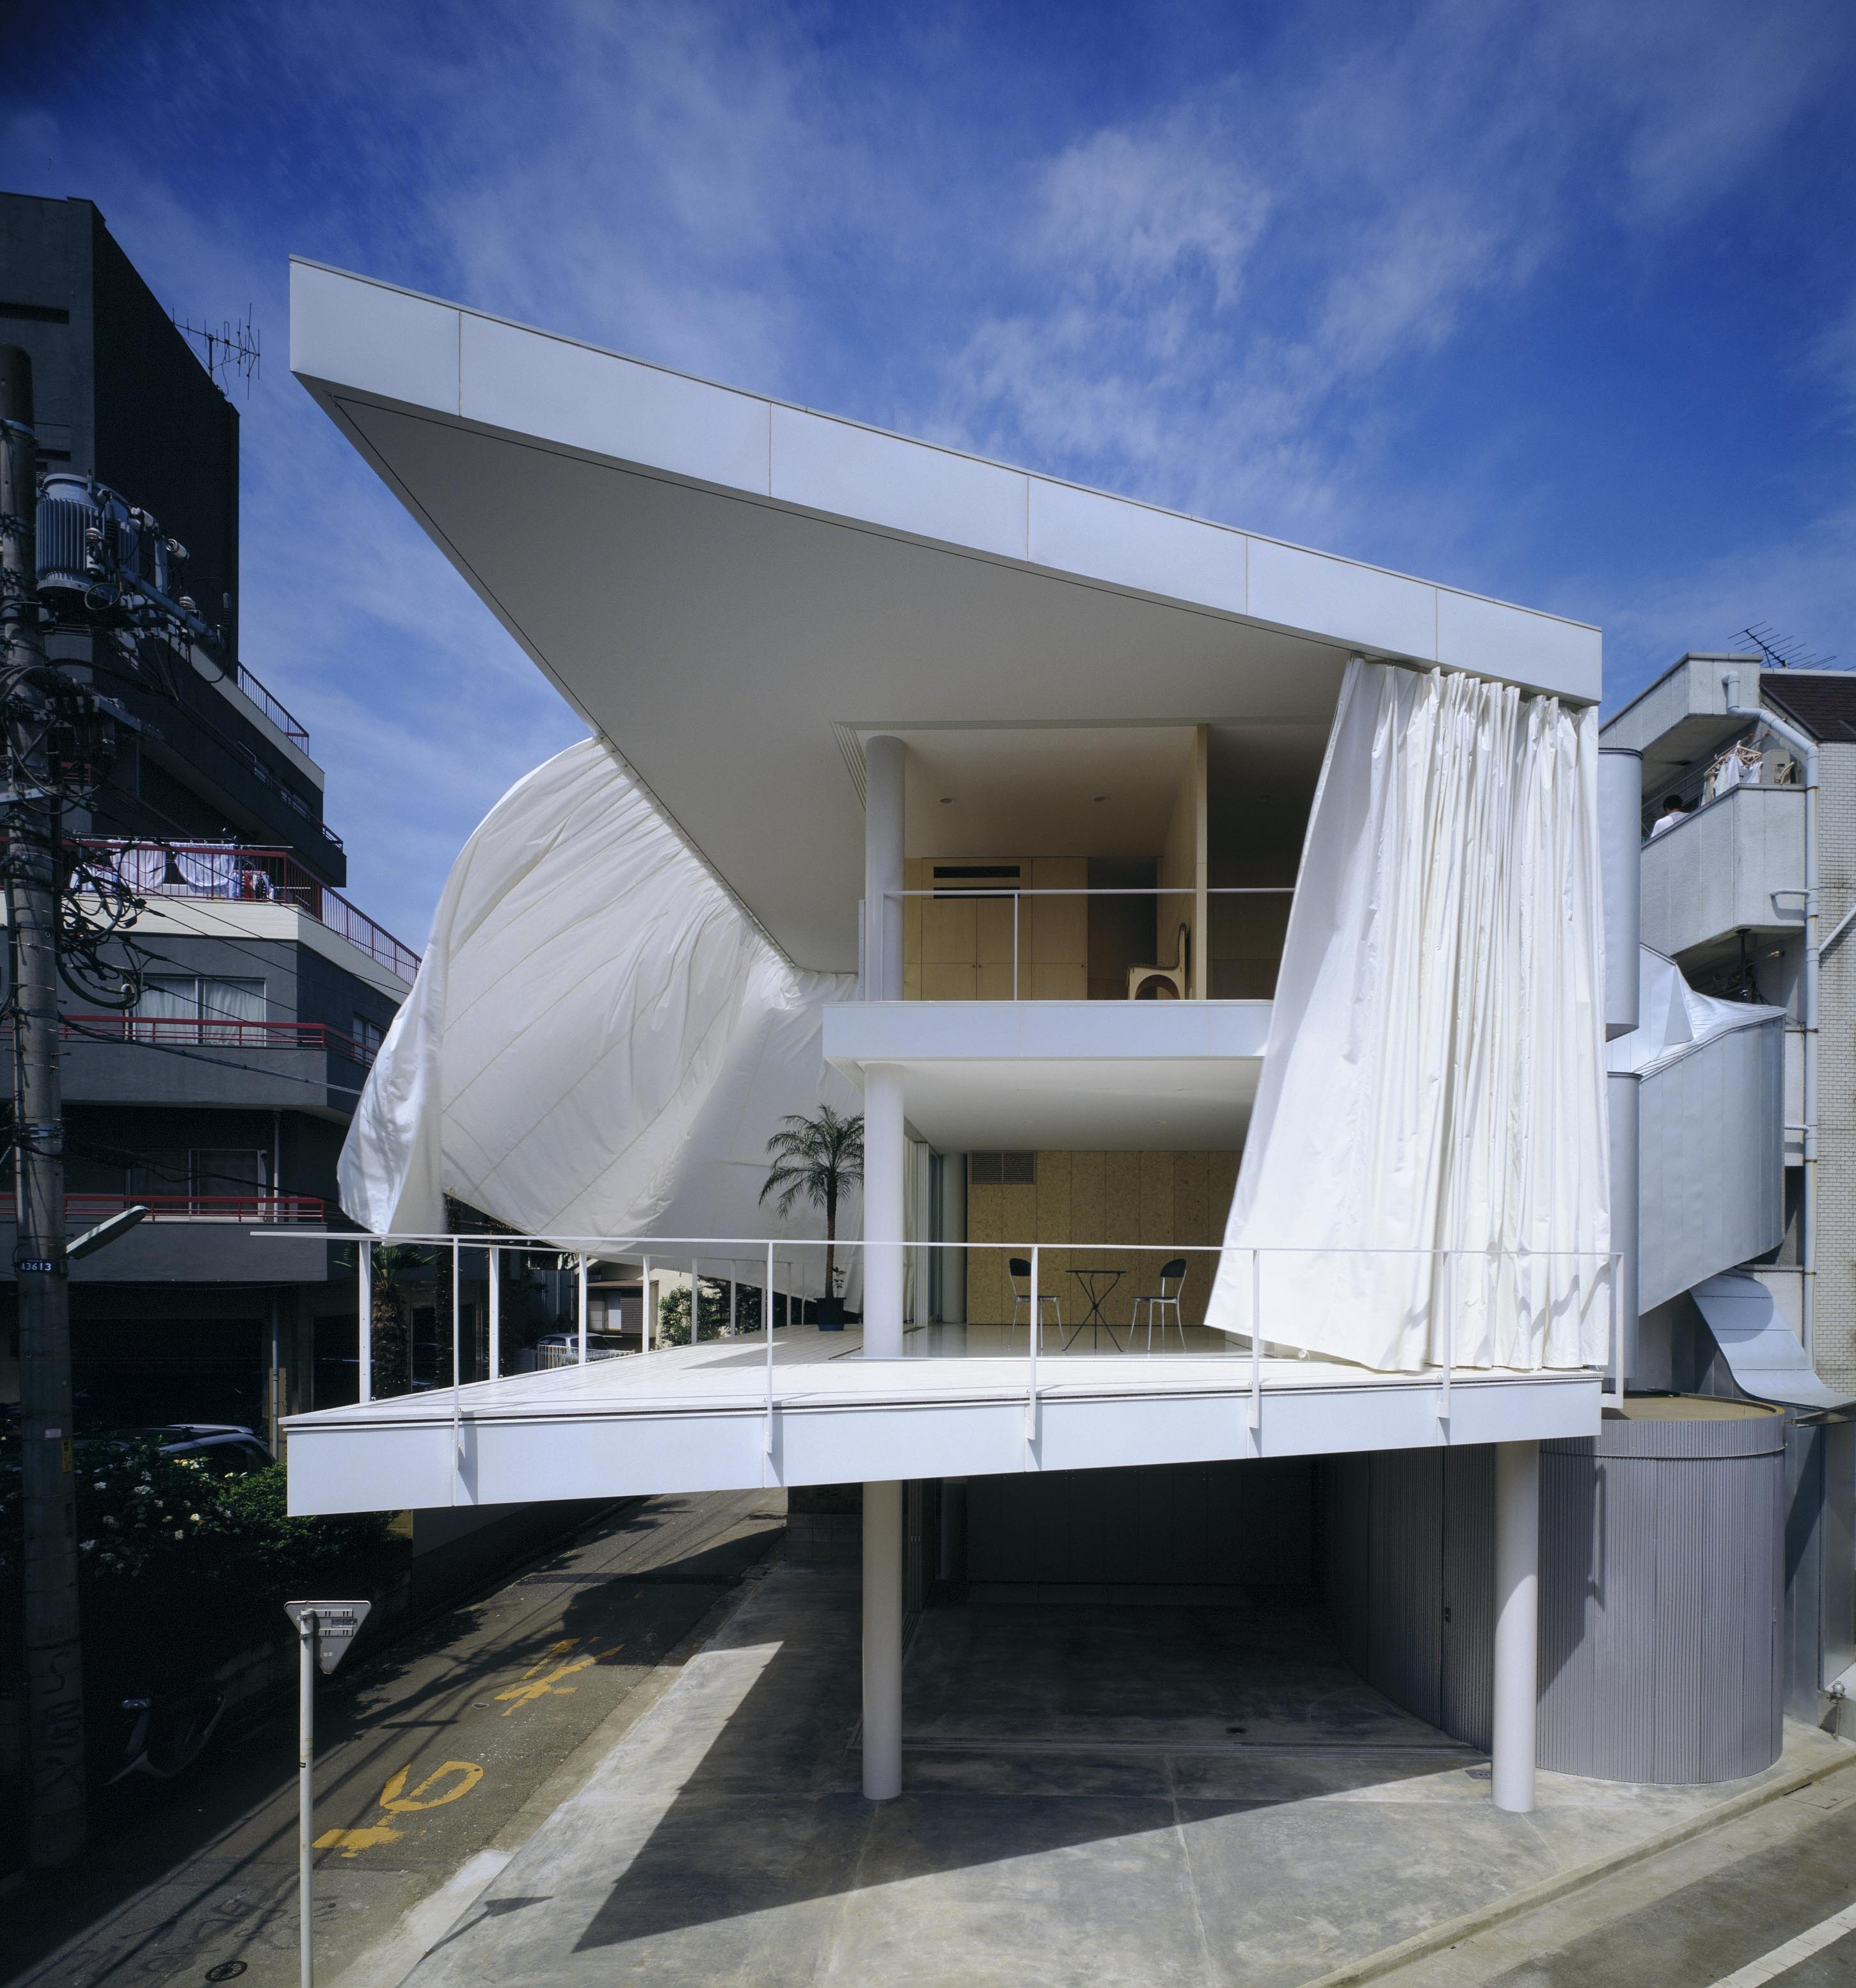 "The Pritzker jury cites the continuity Ban creates between interior and exterior spaces. His 1995 Curtain Wall House in Tokyo ""uses tent-like movable curtains to easily link interior and exterior, yet provide privacy when needed."""